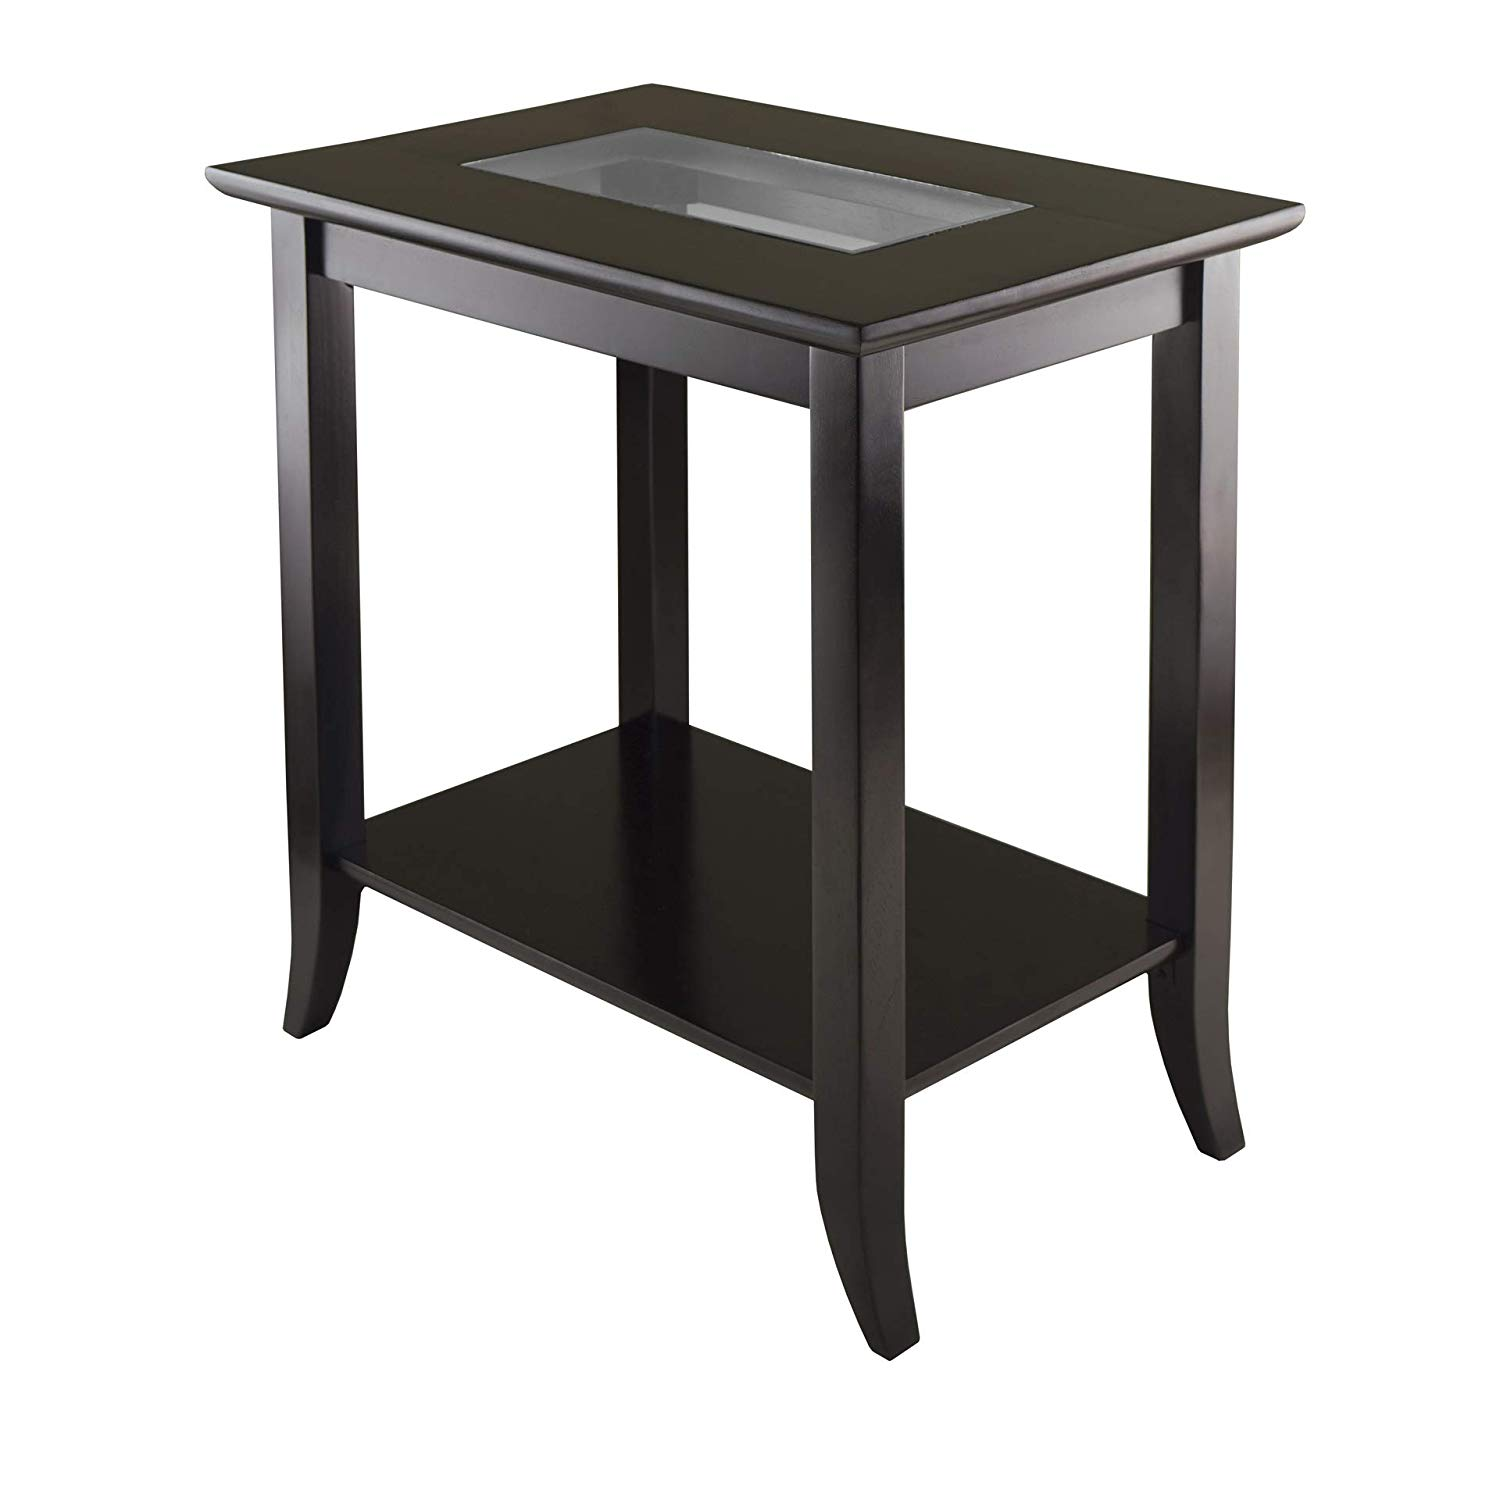 winsome genoa occasional table dark espresso rectangular glass end kitchen dining easy nightstand plans white with shelves iron and sofa seating arrangements industrial unfinished